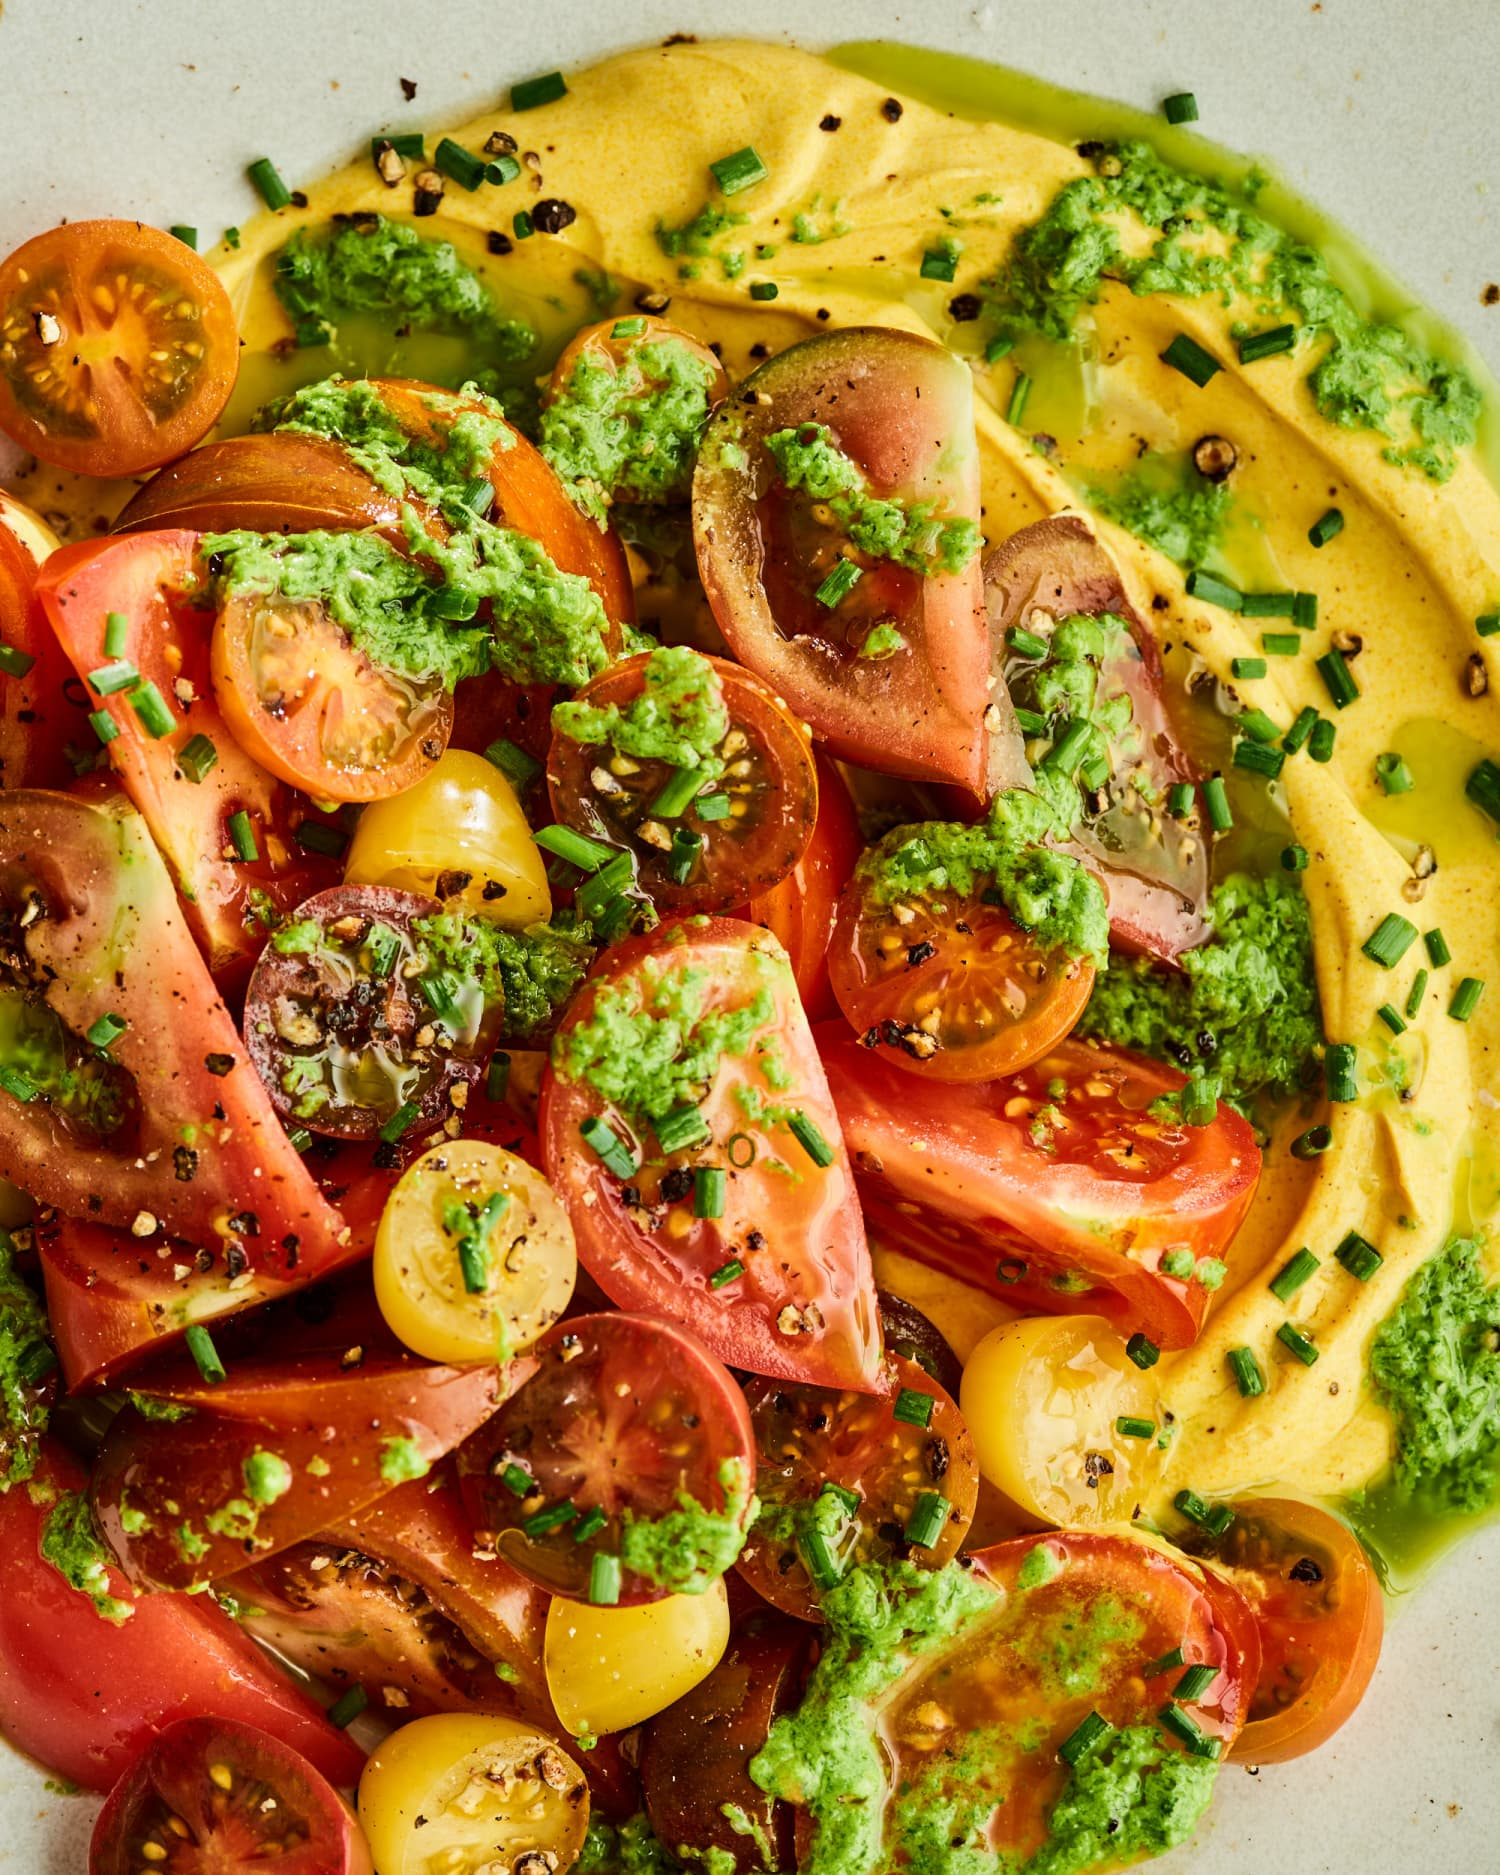 Fresh and Creamy Tomato Salad Is the Ultimate Summer Dish